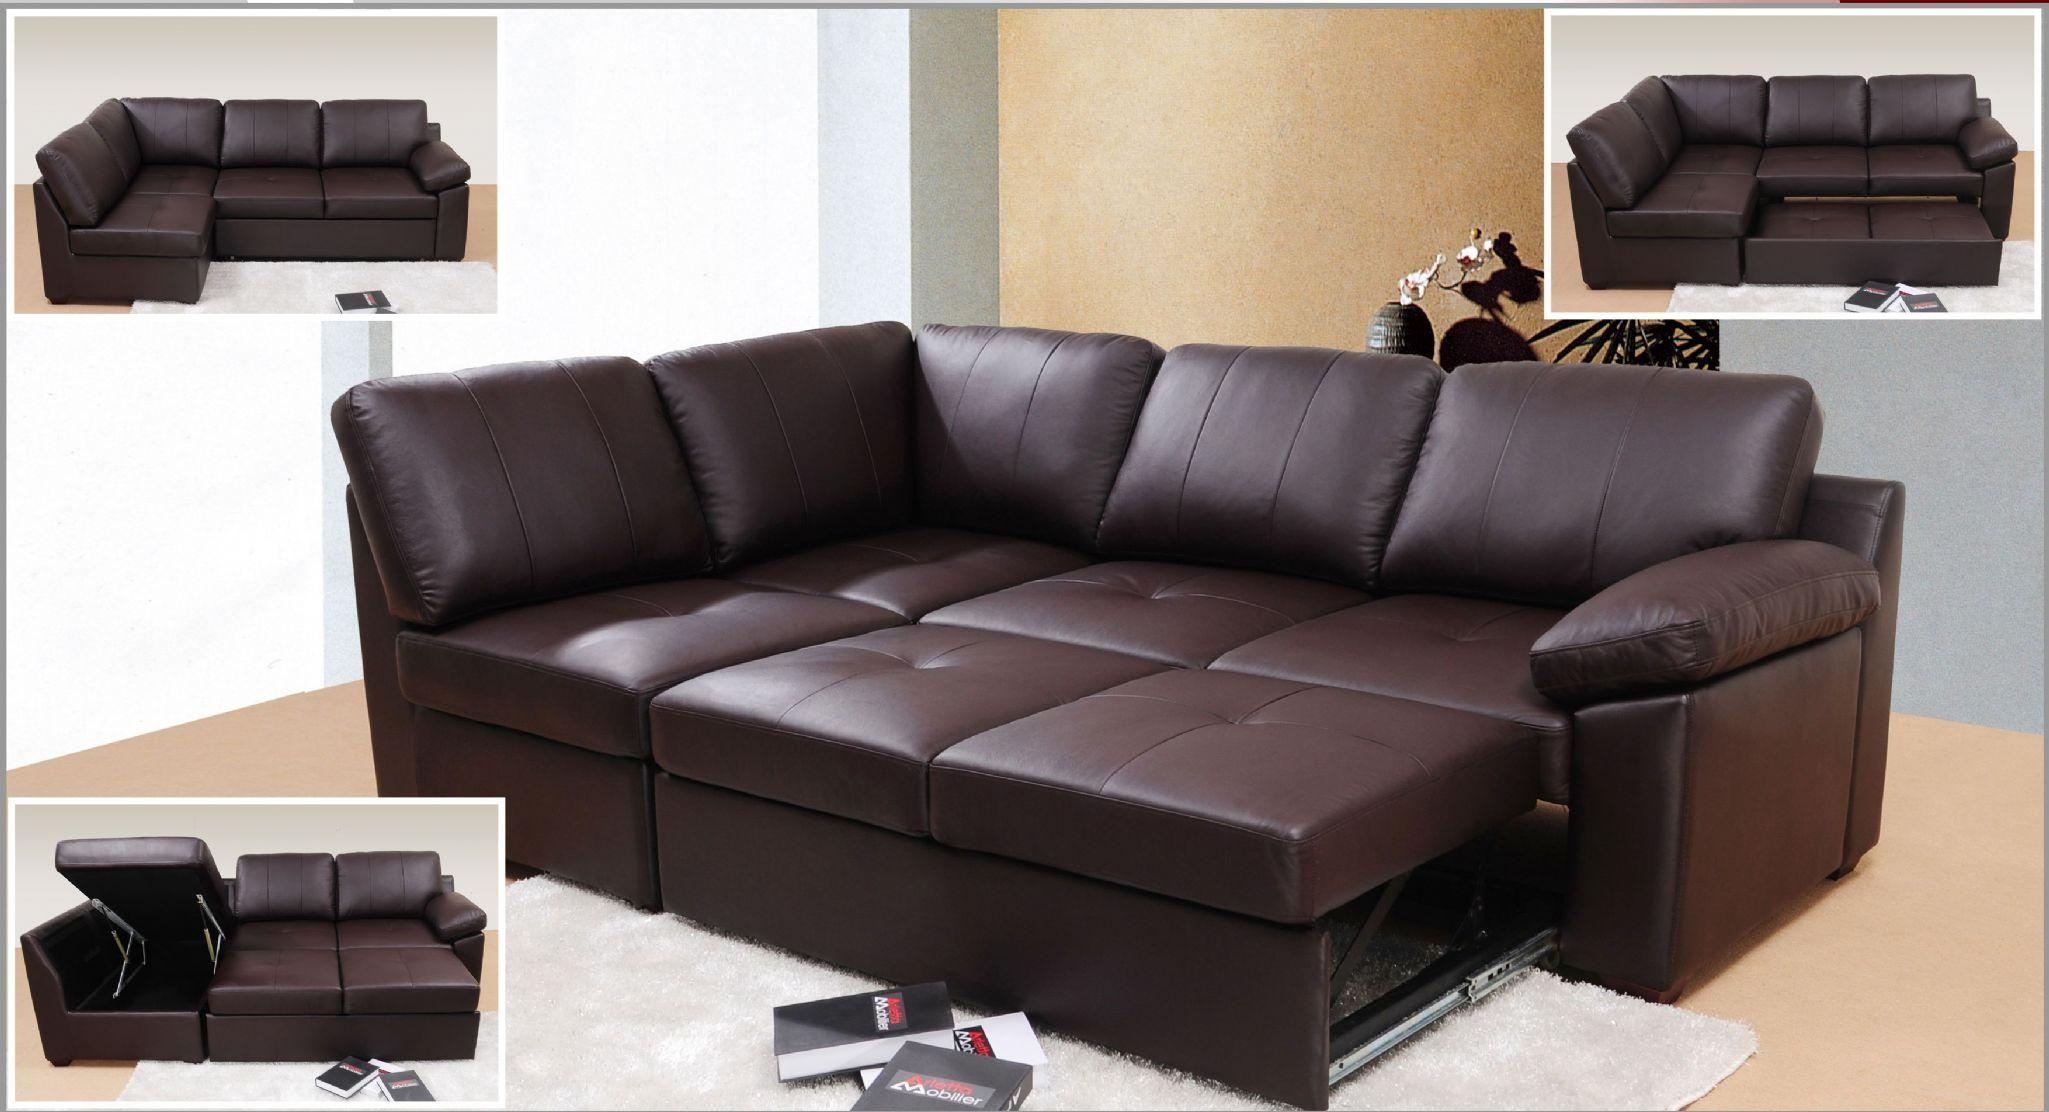 Sofas : Awesome Queen Sofa Bed Bed And Sofa Leather Corner Sofa Inside Small Brown Leather Corner Sofas (Image 18 of 21)